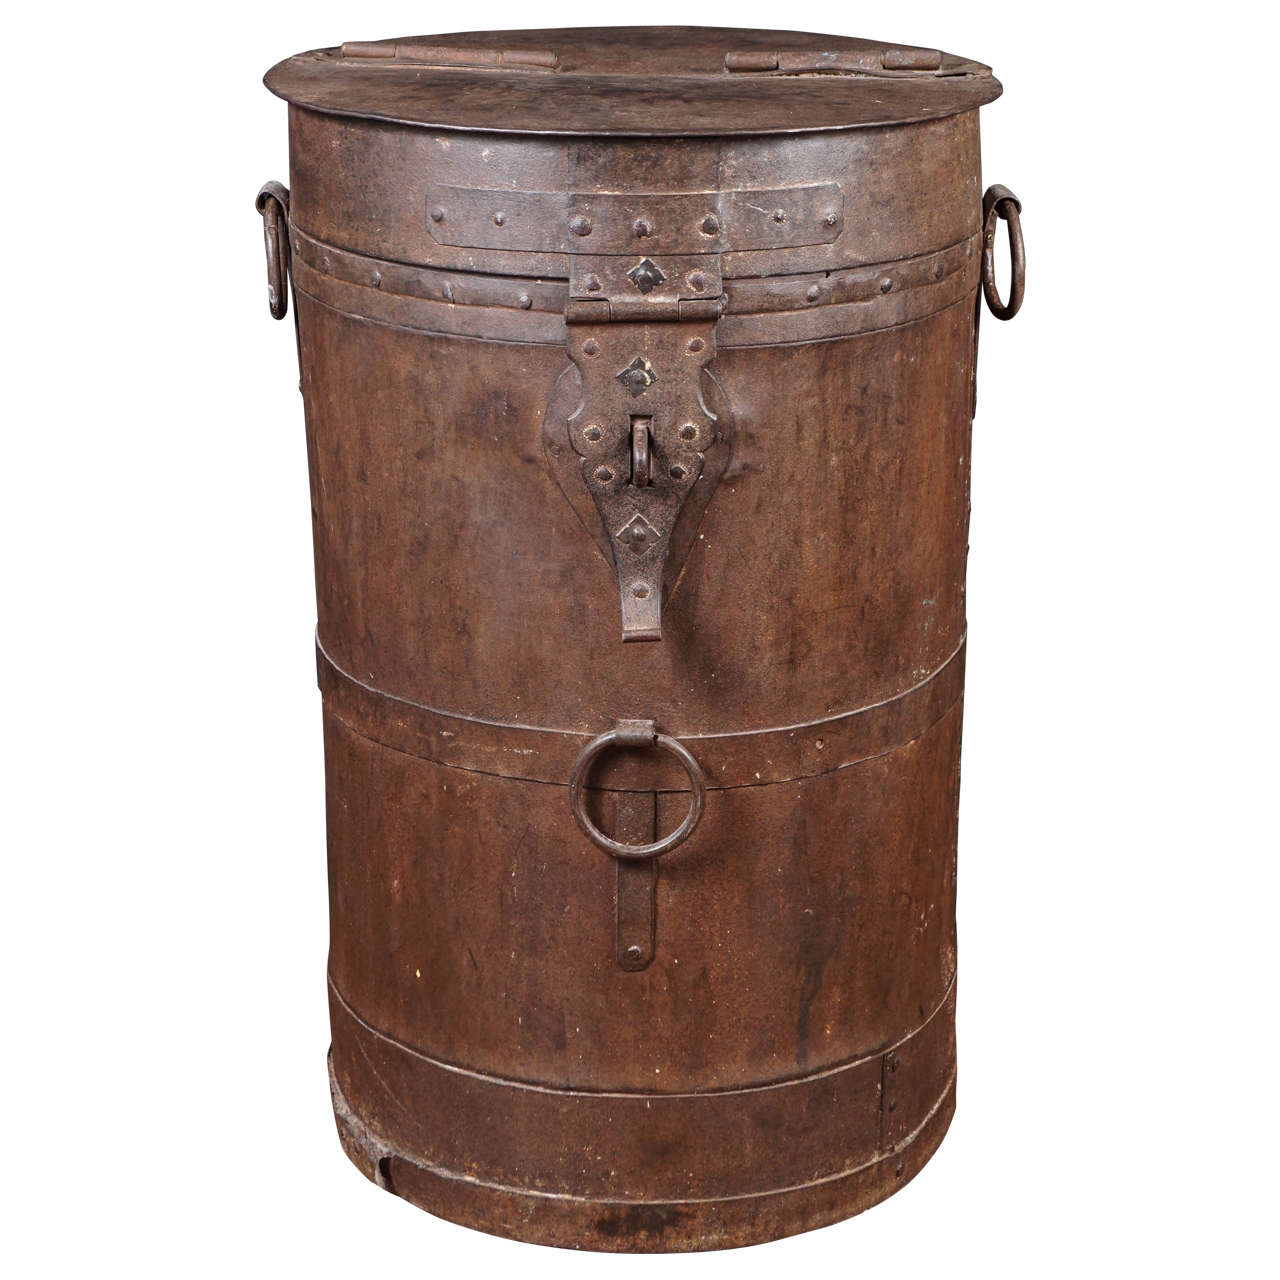 Midcentury Iron Industrial Storage Container For Sale at 1stdibs